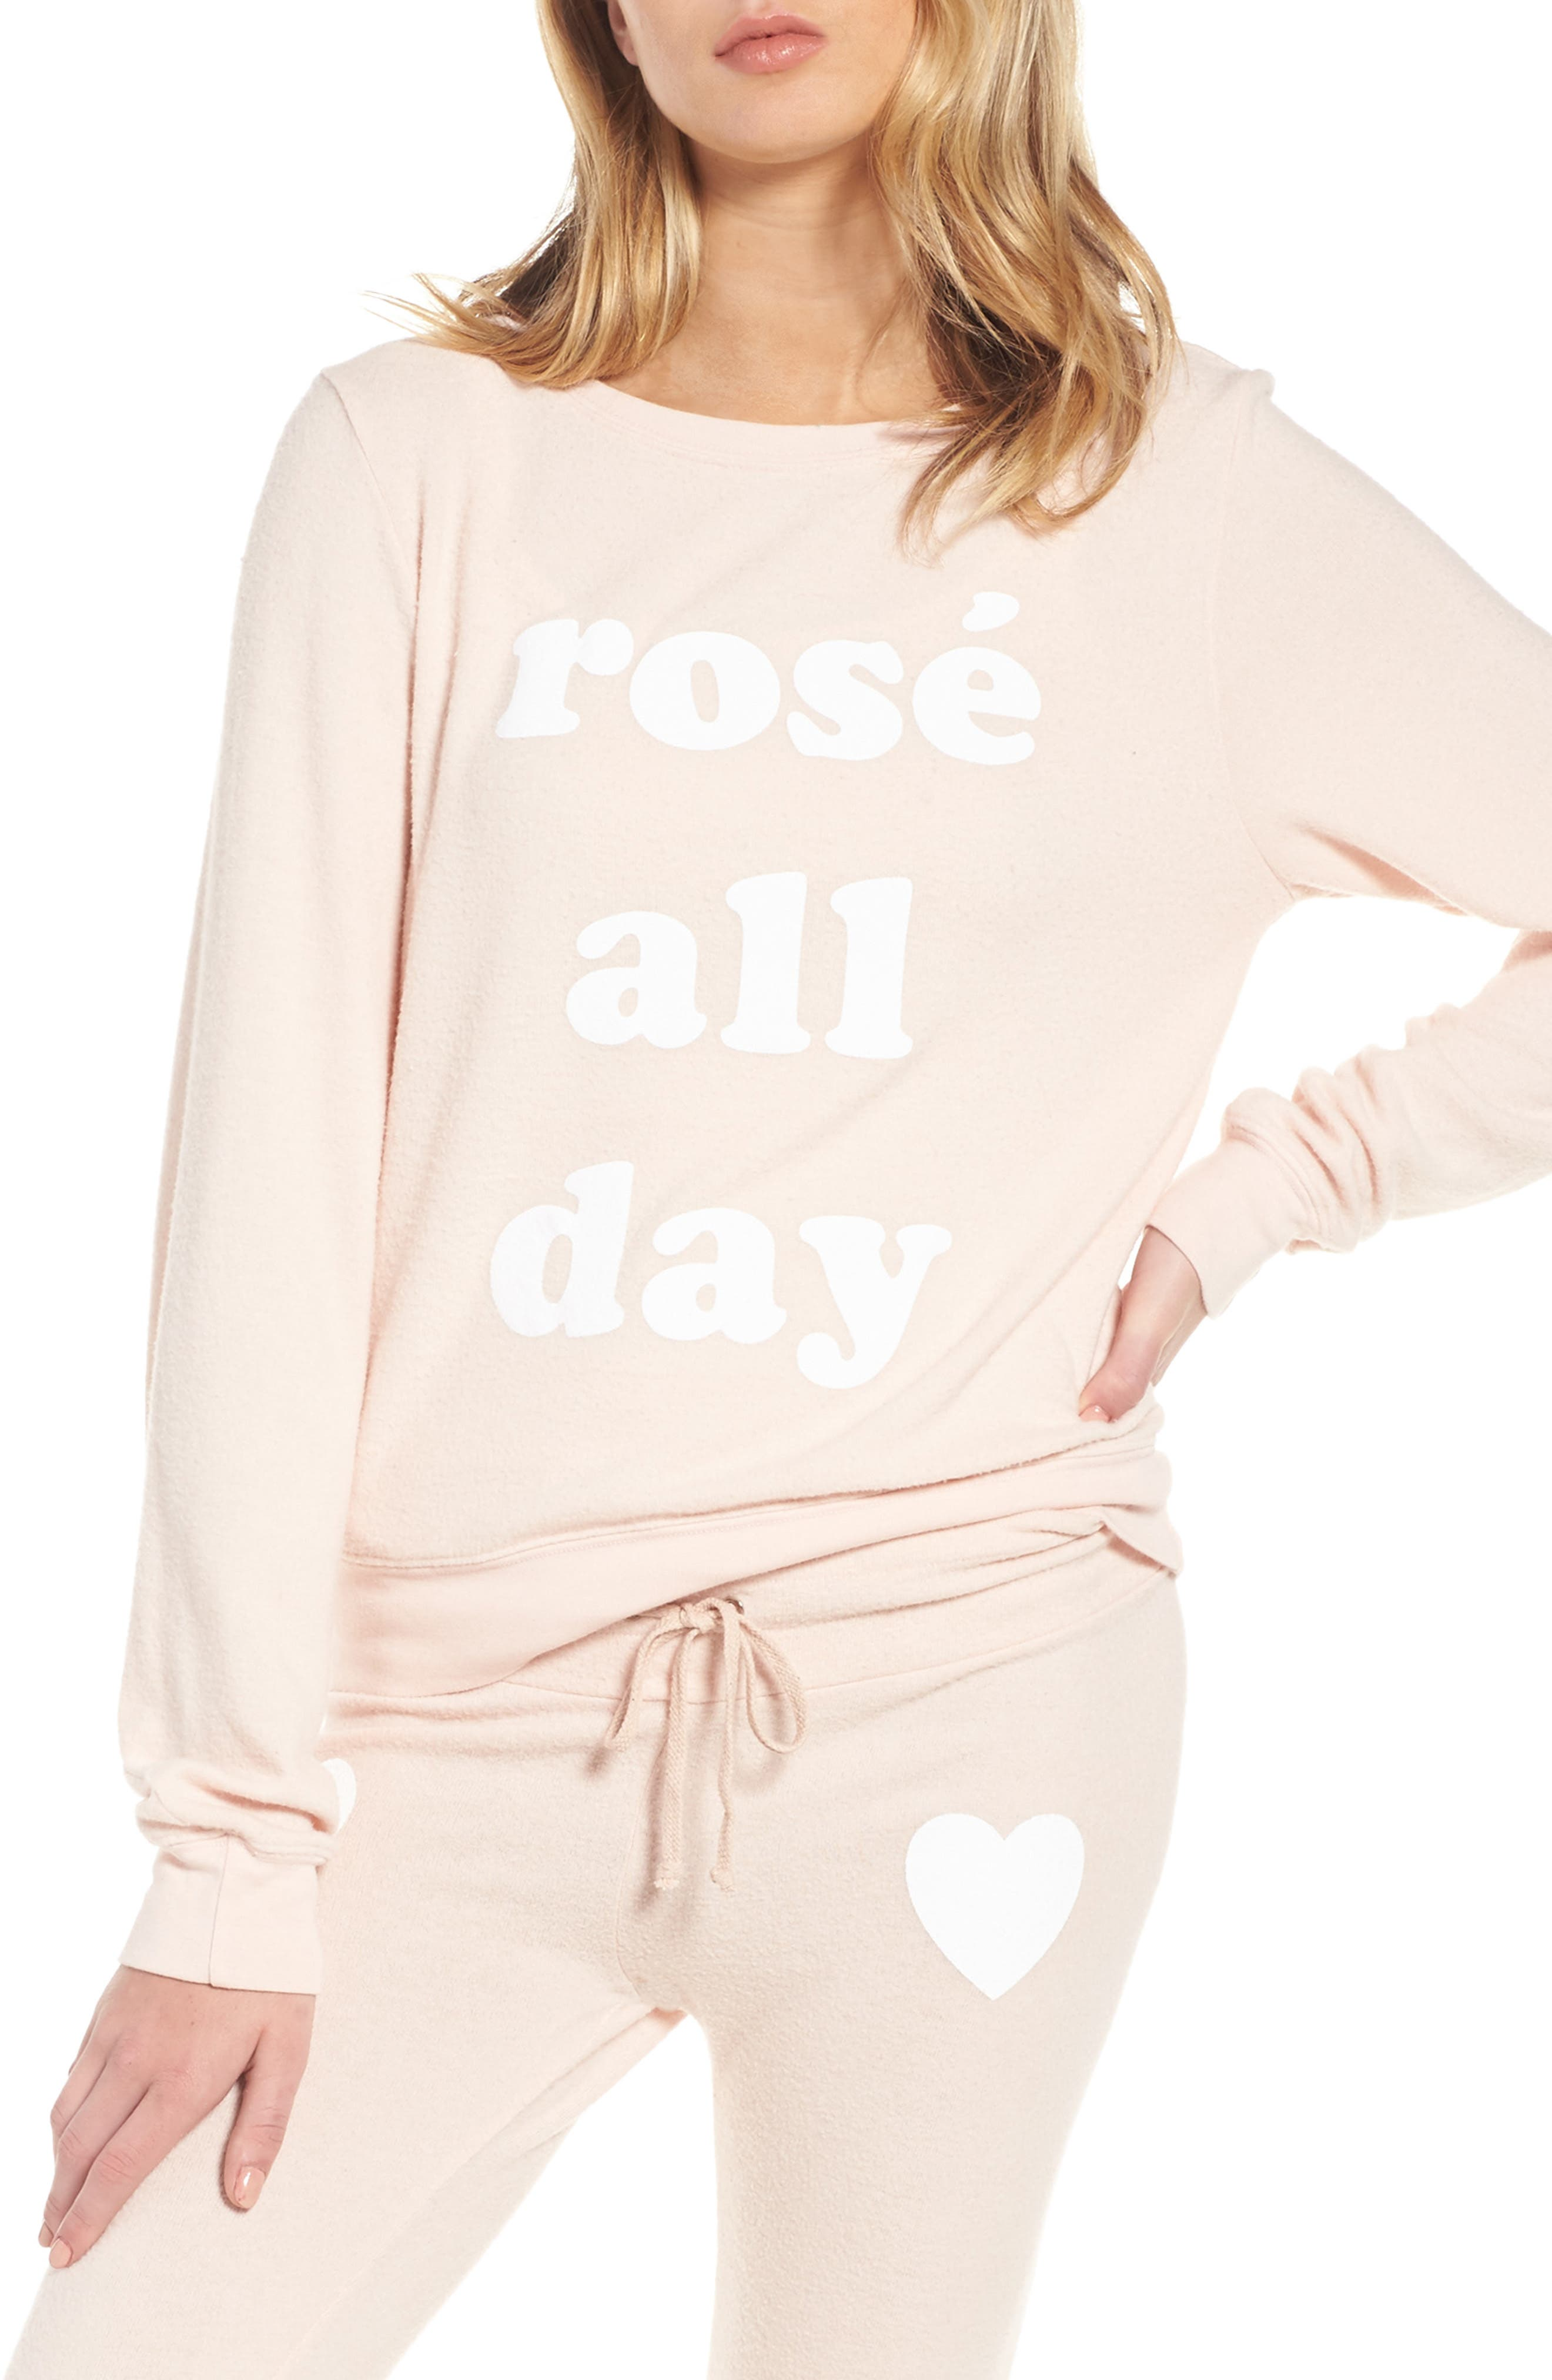 Rosé All Day Sweatshirt,                         Main,                         color, Rose